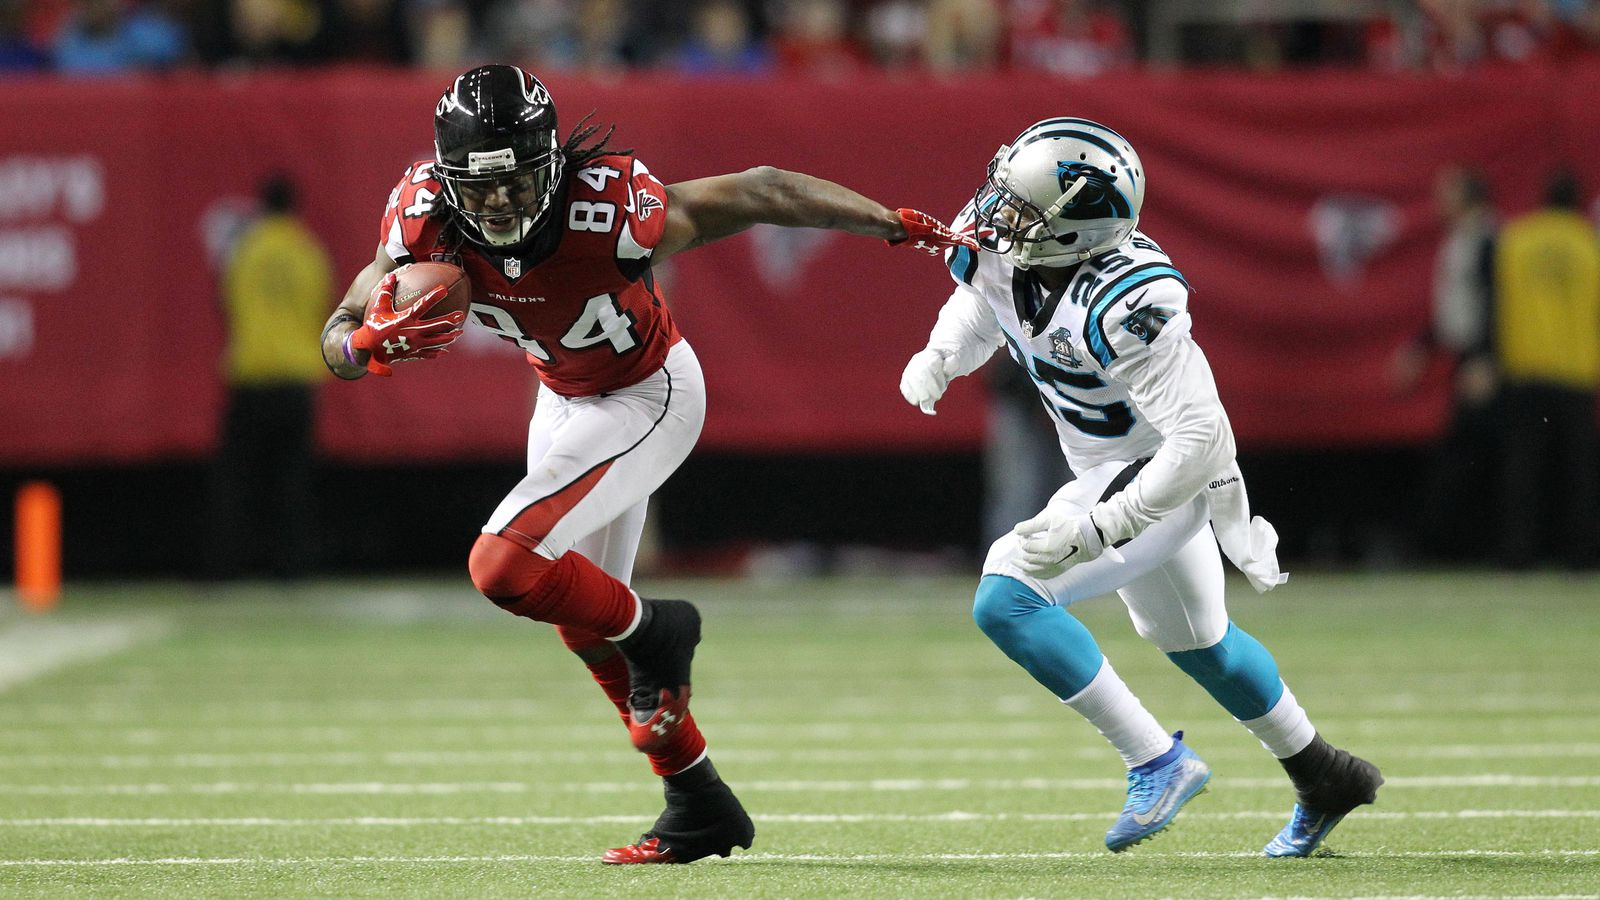 NFL Jerseys Nike - What can we expect from Roddy White in 2015? - The Falcoholic